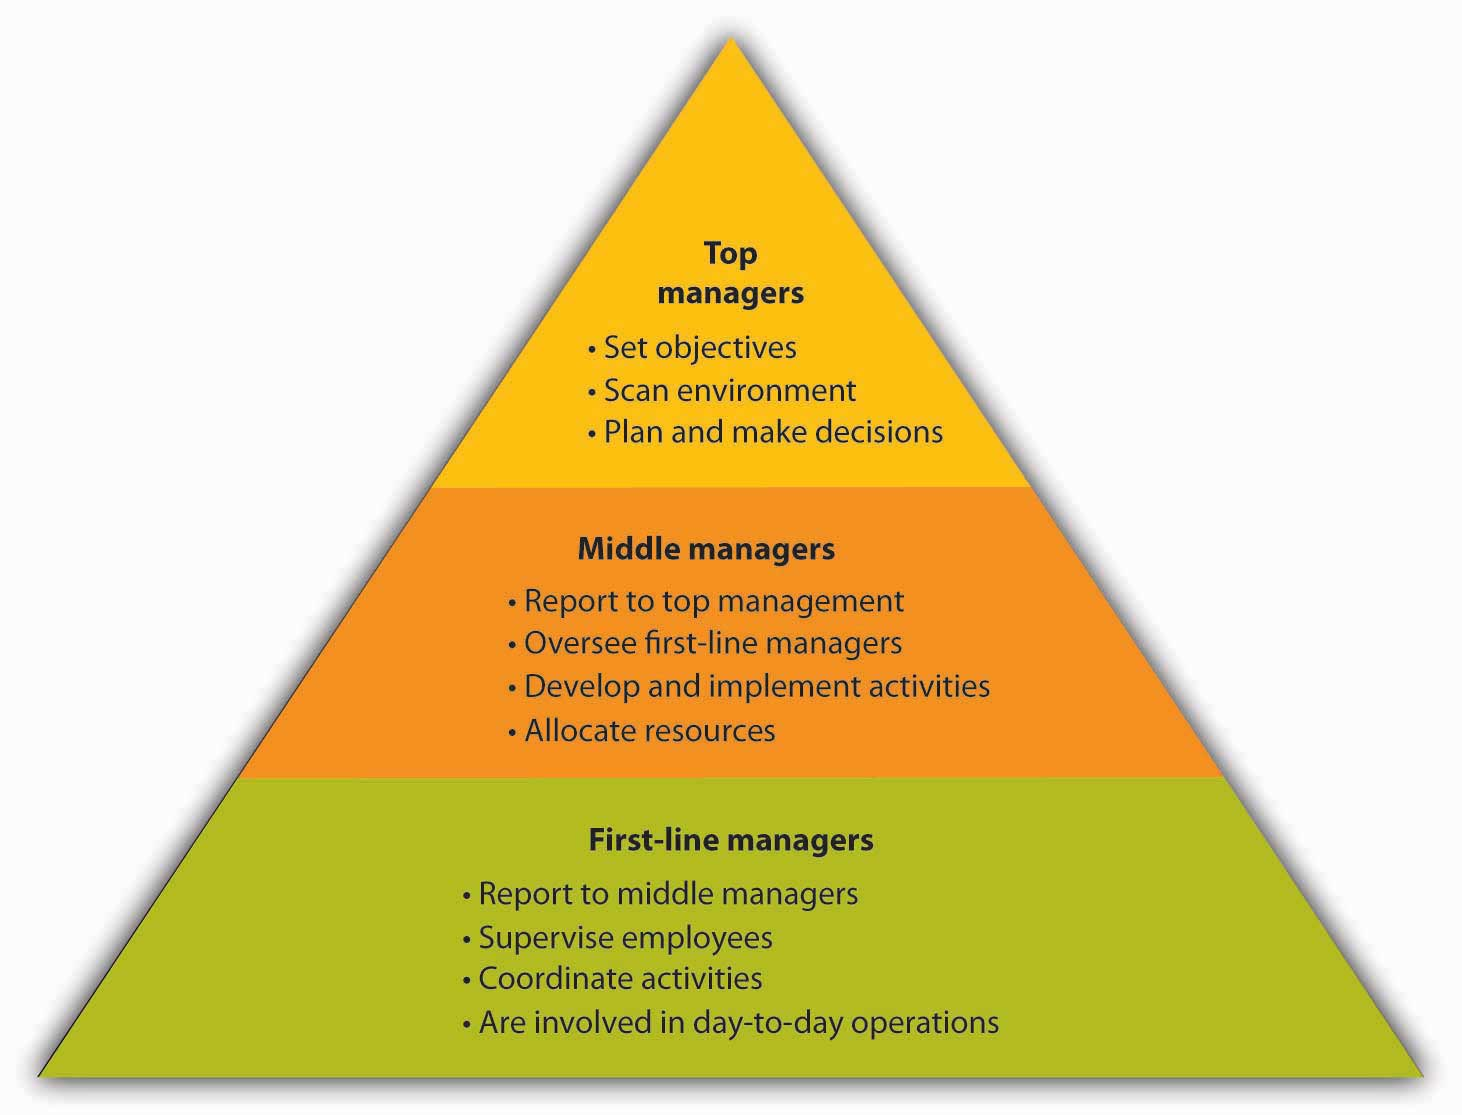 Levels of Management: Top managers: set objectives, scan environment, plan and make decisions; Middle managers: report to top management, oversee first-line managers, develop and implement activities, allocate resources; First-line managers: report to middle managers, supervise employees, coordinate activities, are involved in day-to-day operations